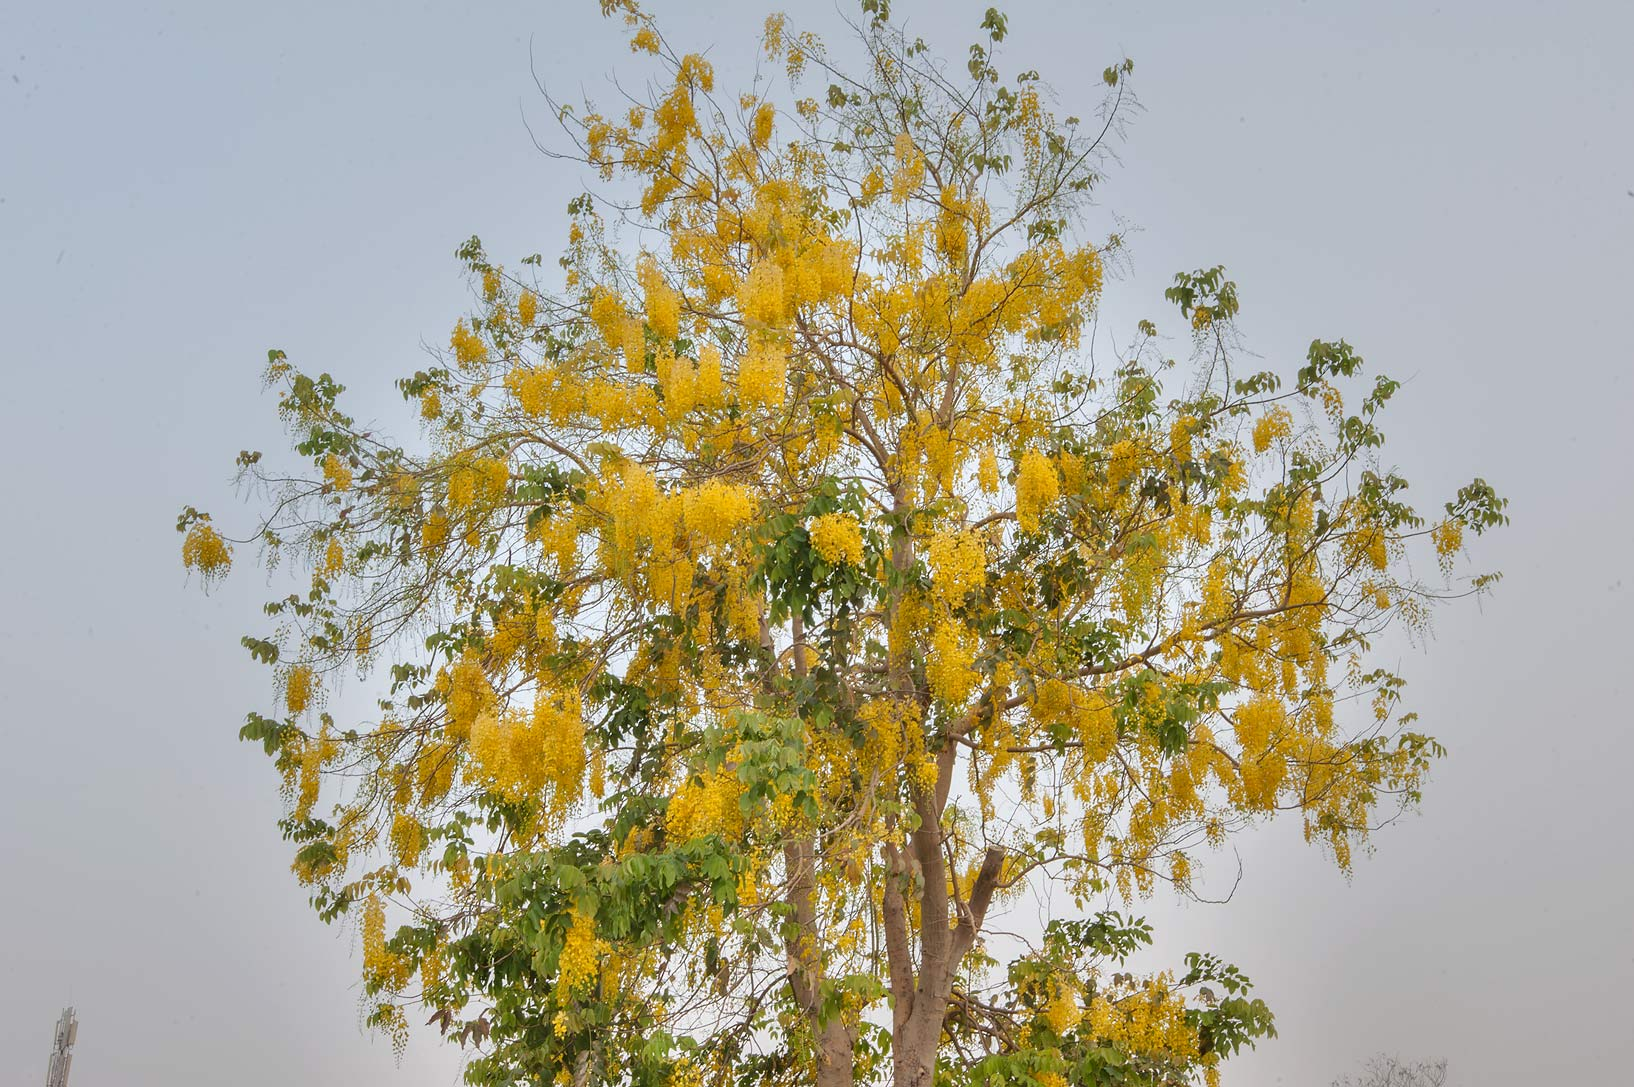 Blooming golden shower tree (Cassia fistula) in Aspire Park. Doha, Qatar